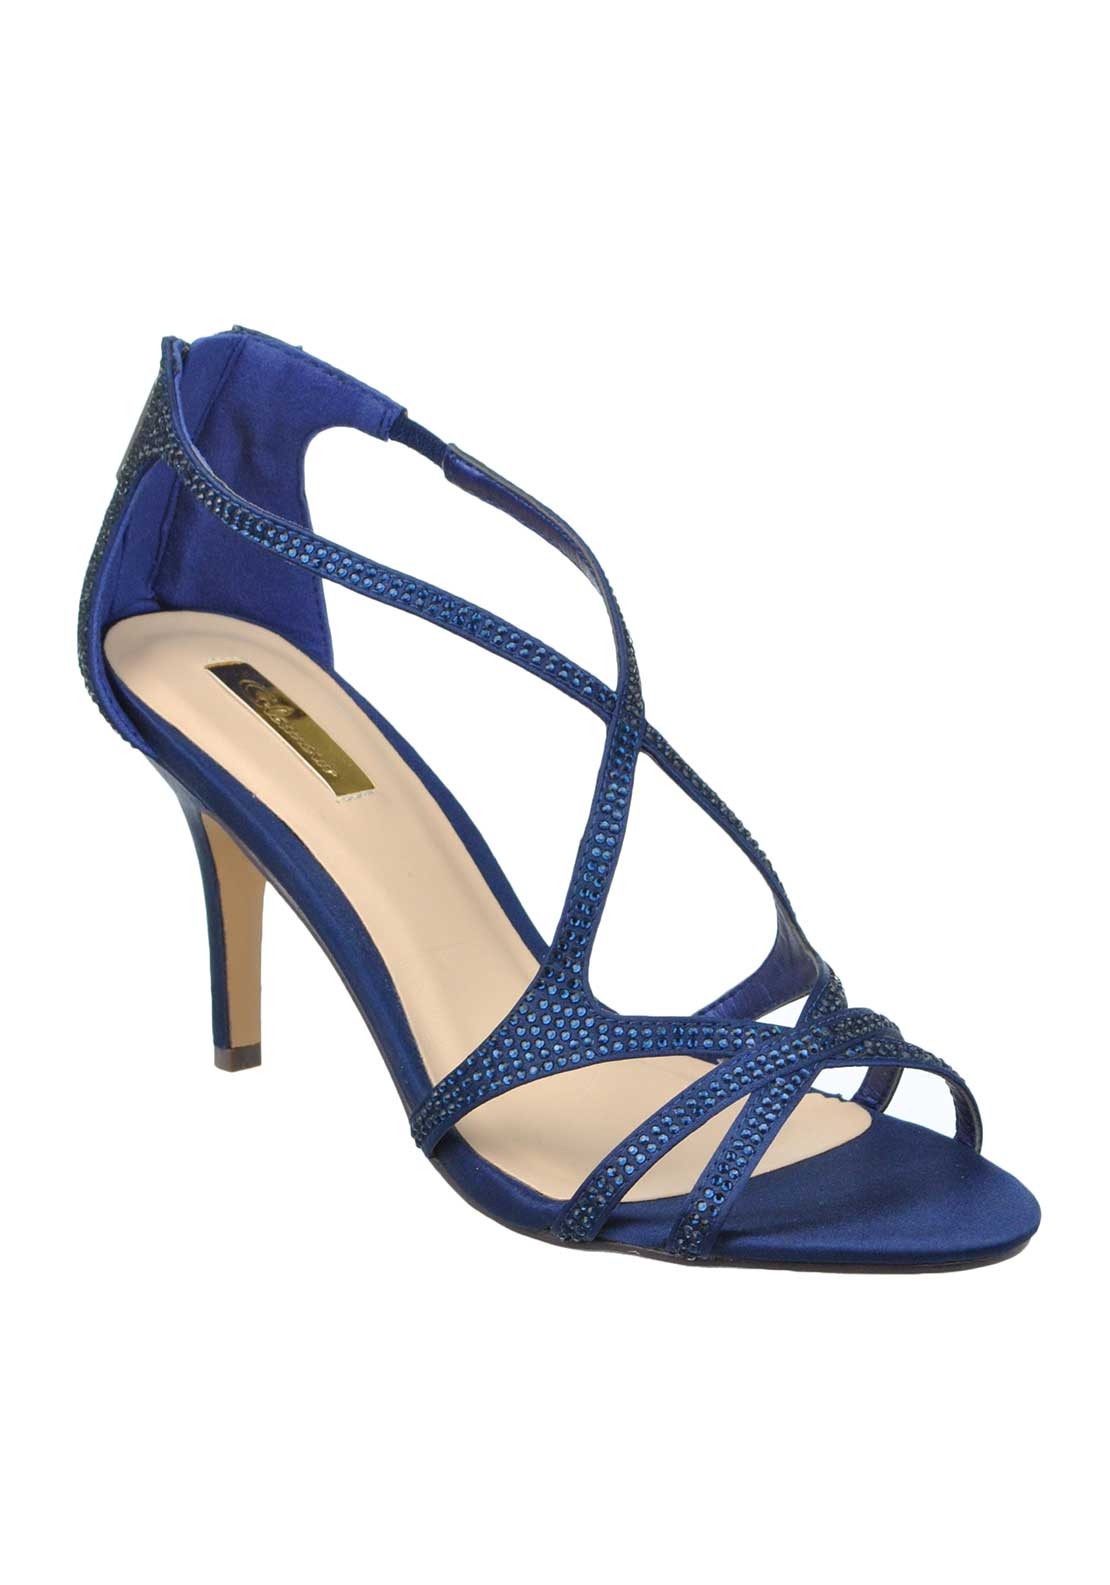 Glamour Satin Gem Embellished Strappy Heeled Sandals, Navy